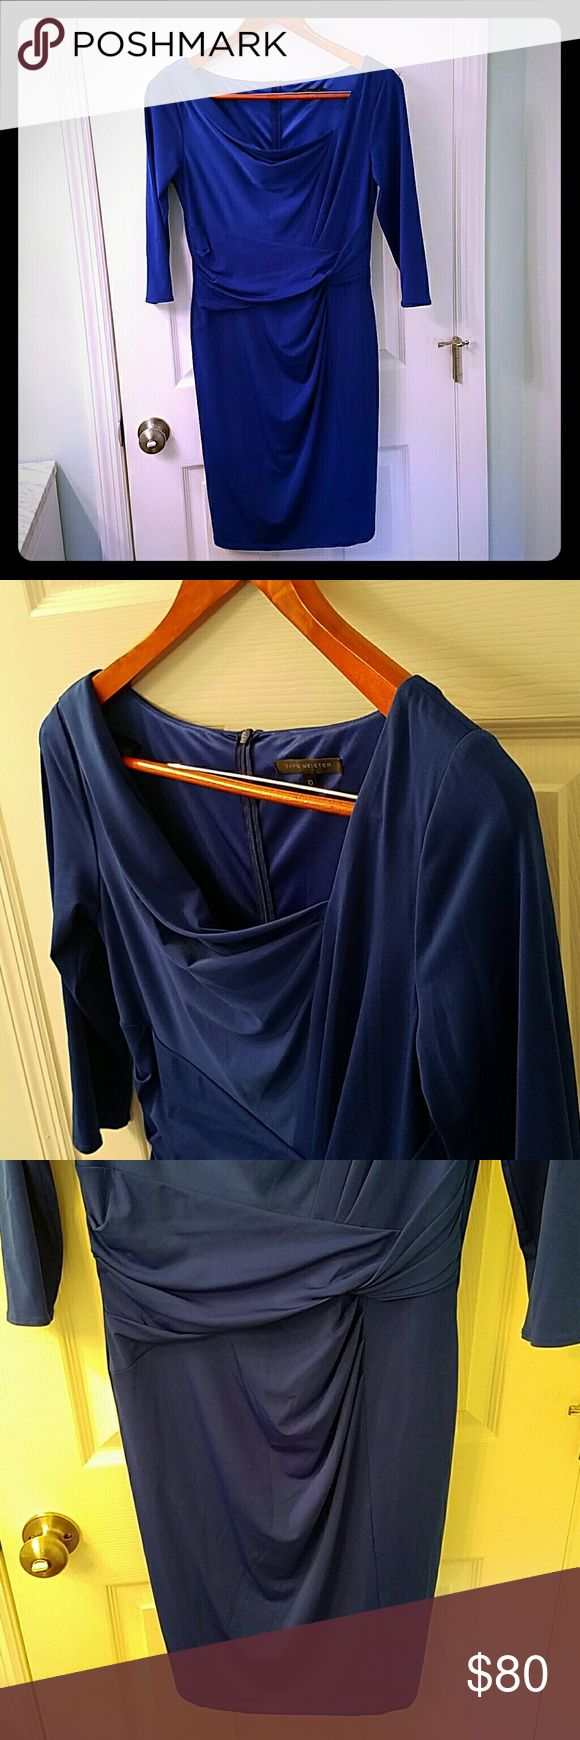 David Meister 3/4 sleeve dress Beautiful blue figure flattering dress made out of thicker stretch 95% polyester 5% spandex material.  Inside is lined.  Draping at collar and ruching at waist.  Very sexy but classic.  Size 10. David Meister Dresses Midi